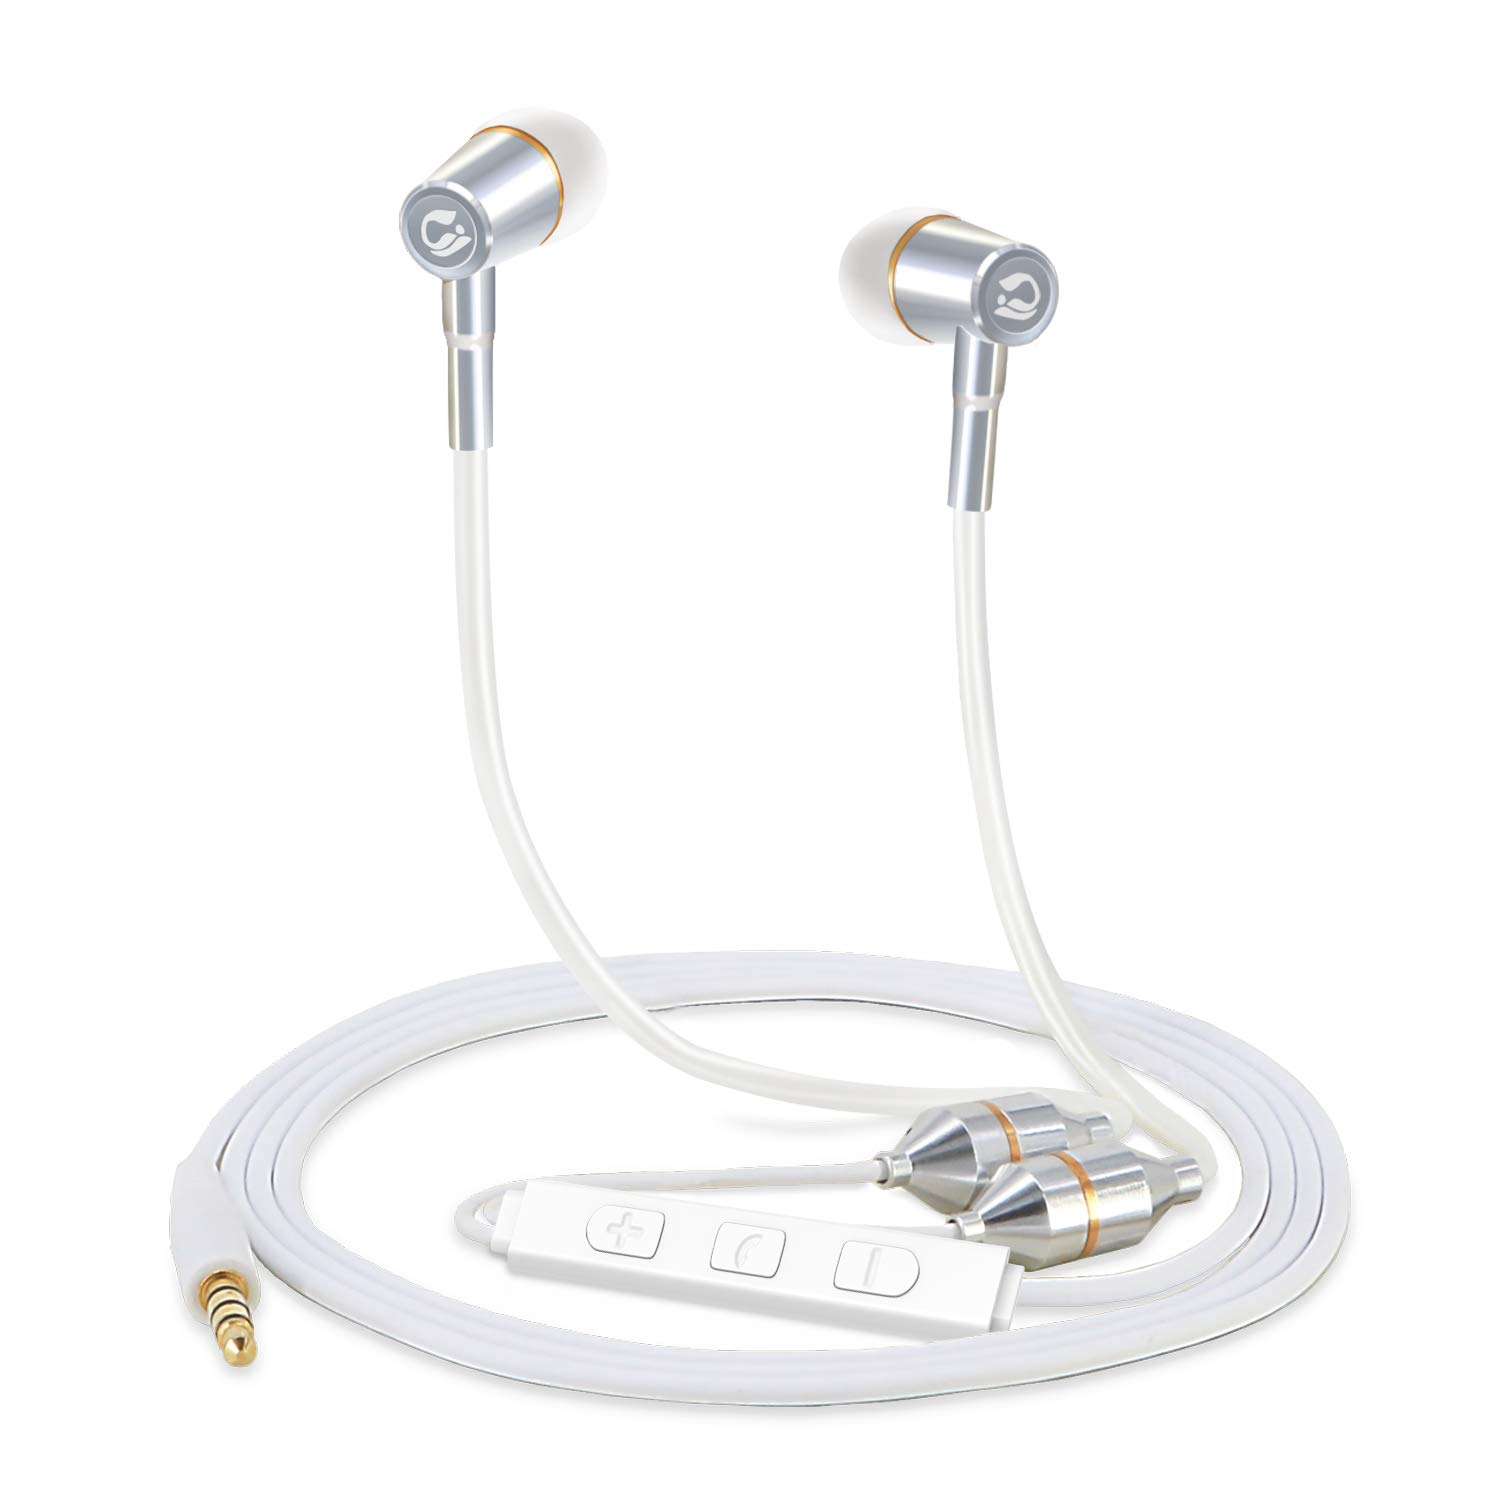 410e51a601b Tuisy Air Tube Headset - Upgraded Radiation Free Headphones Earbuds Earphone  with Microphone and Volume Control, EMF Protection, Universal for iPhone ...